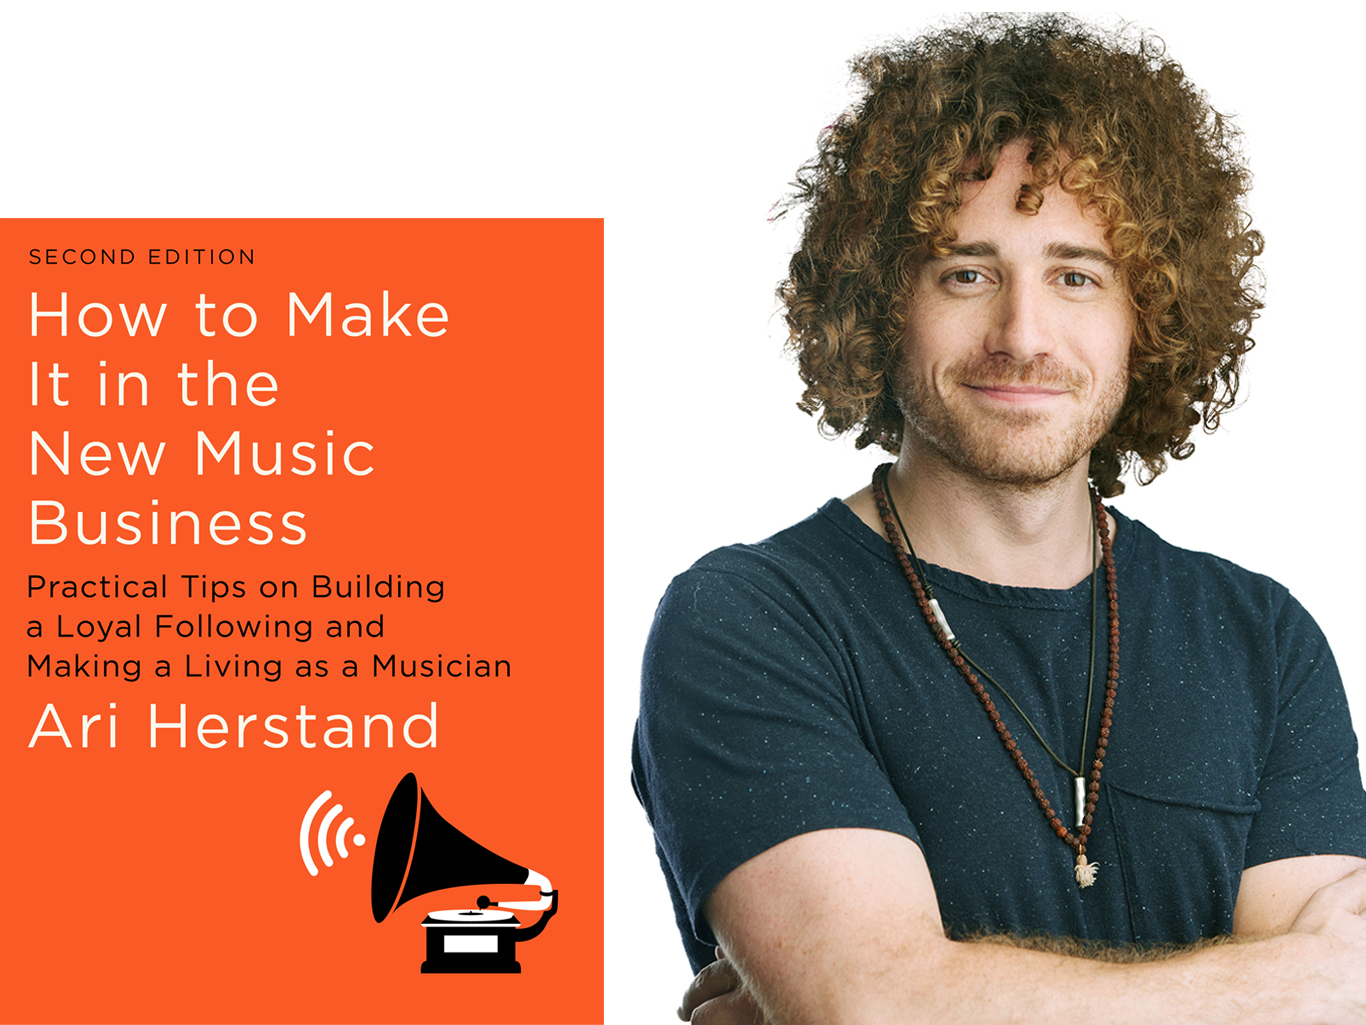 Ari Herstand Book: How to Make It in the New Music Business (second edition)